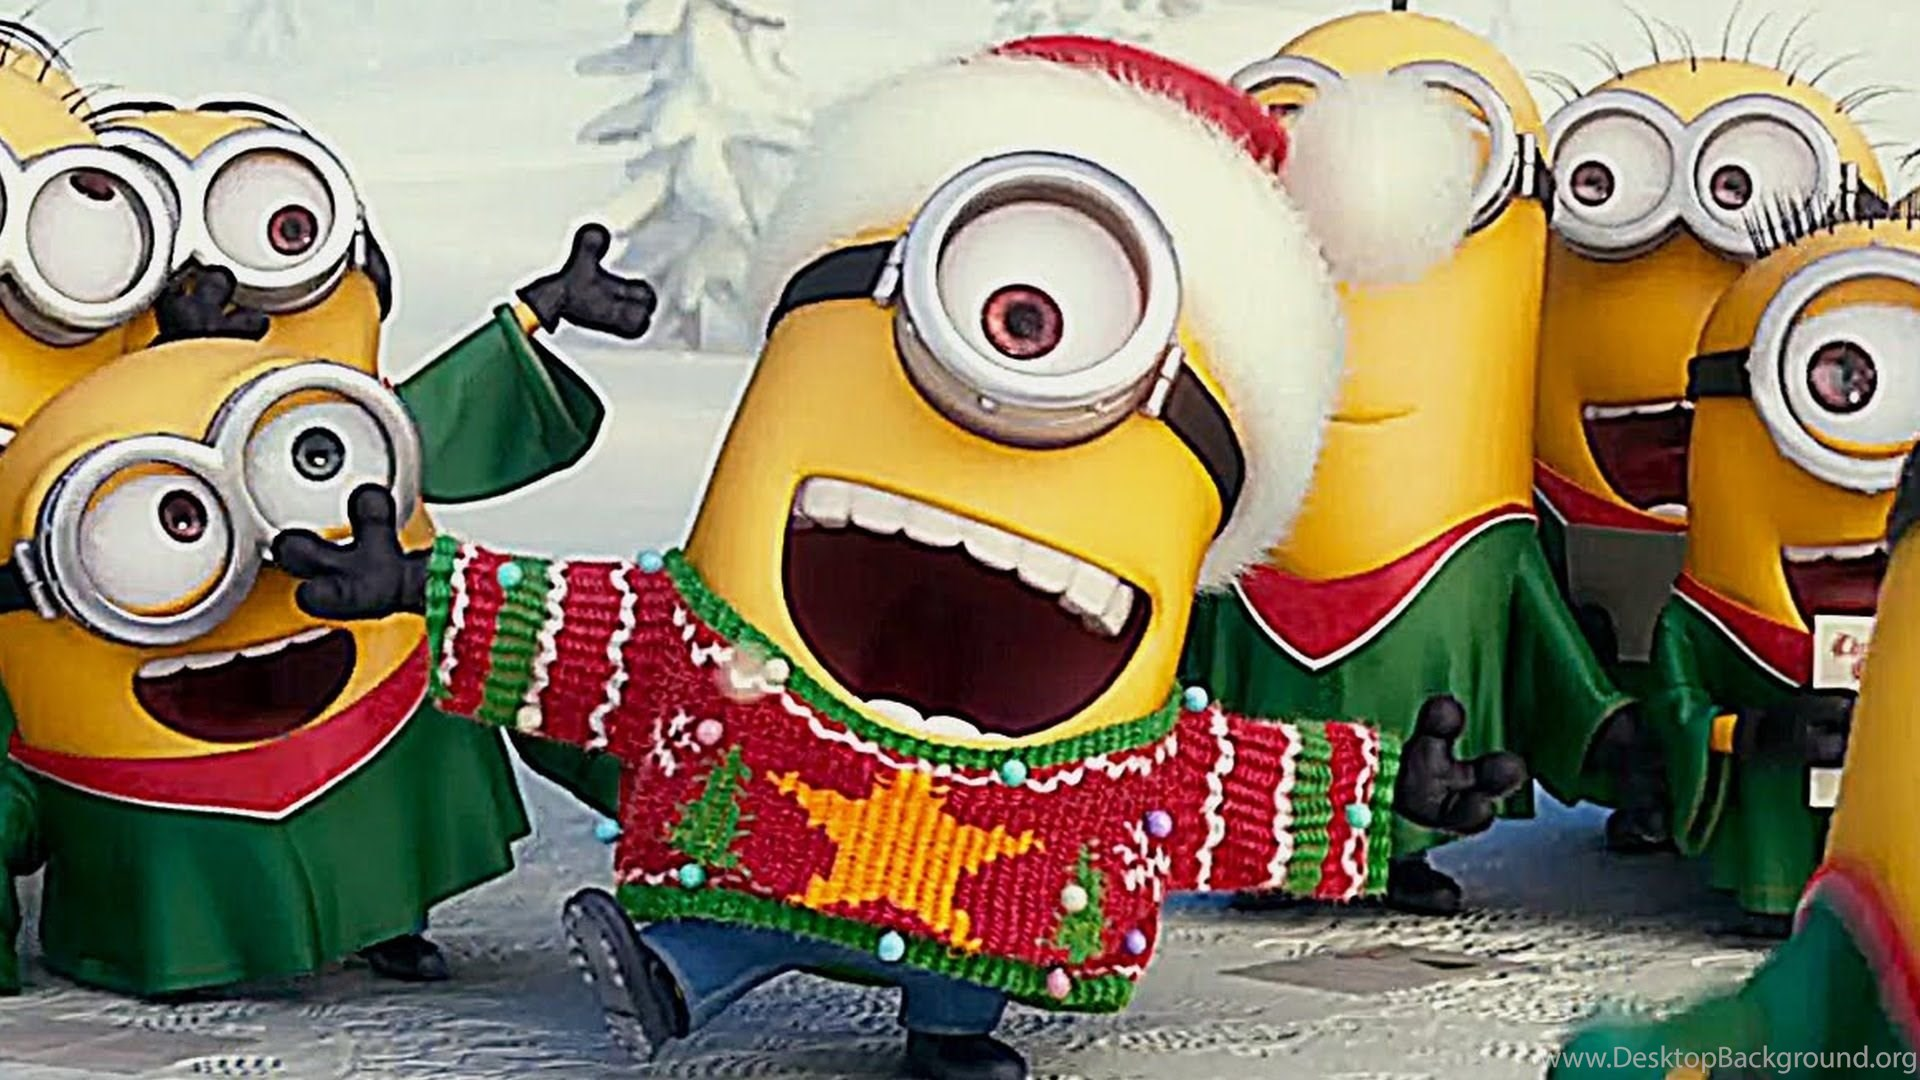 Funny Minion Merry Christmas Wallpapers Sayings: Minions Christmas Trailer Englisch YouTube Desktop Background